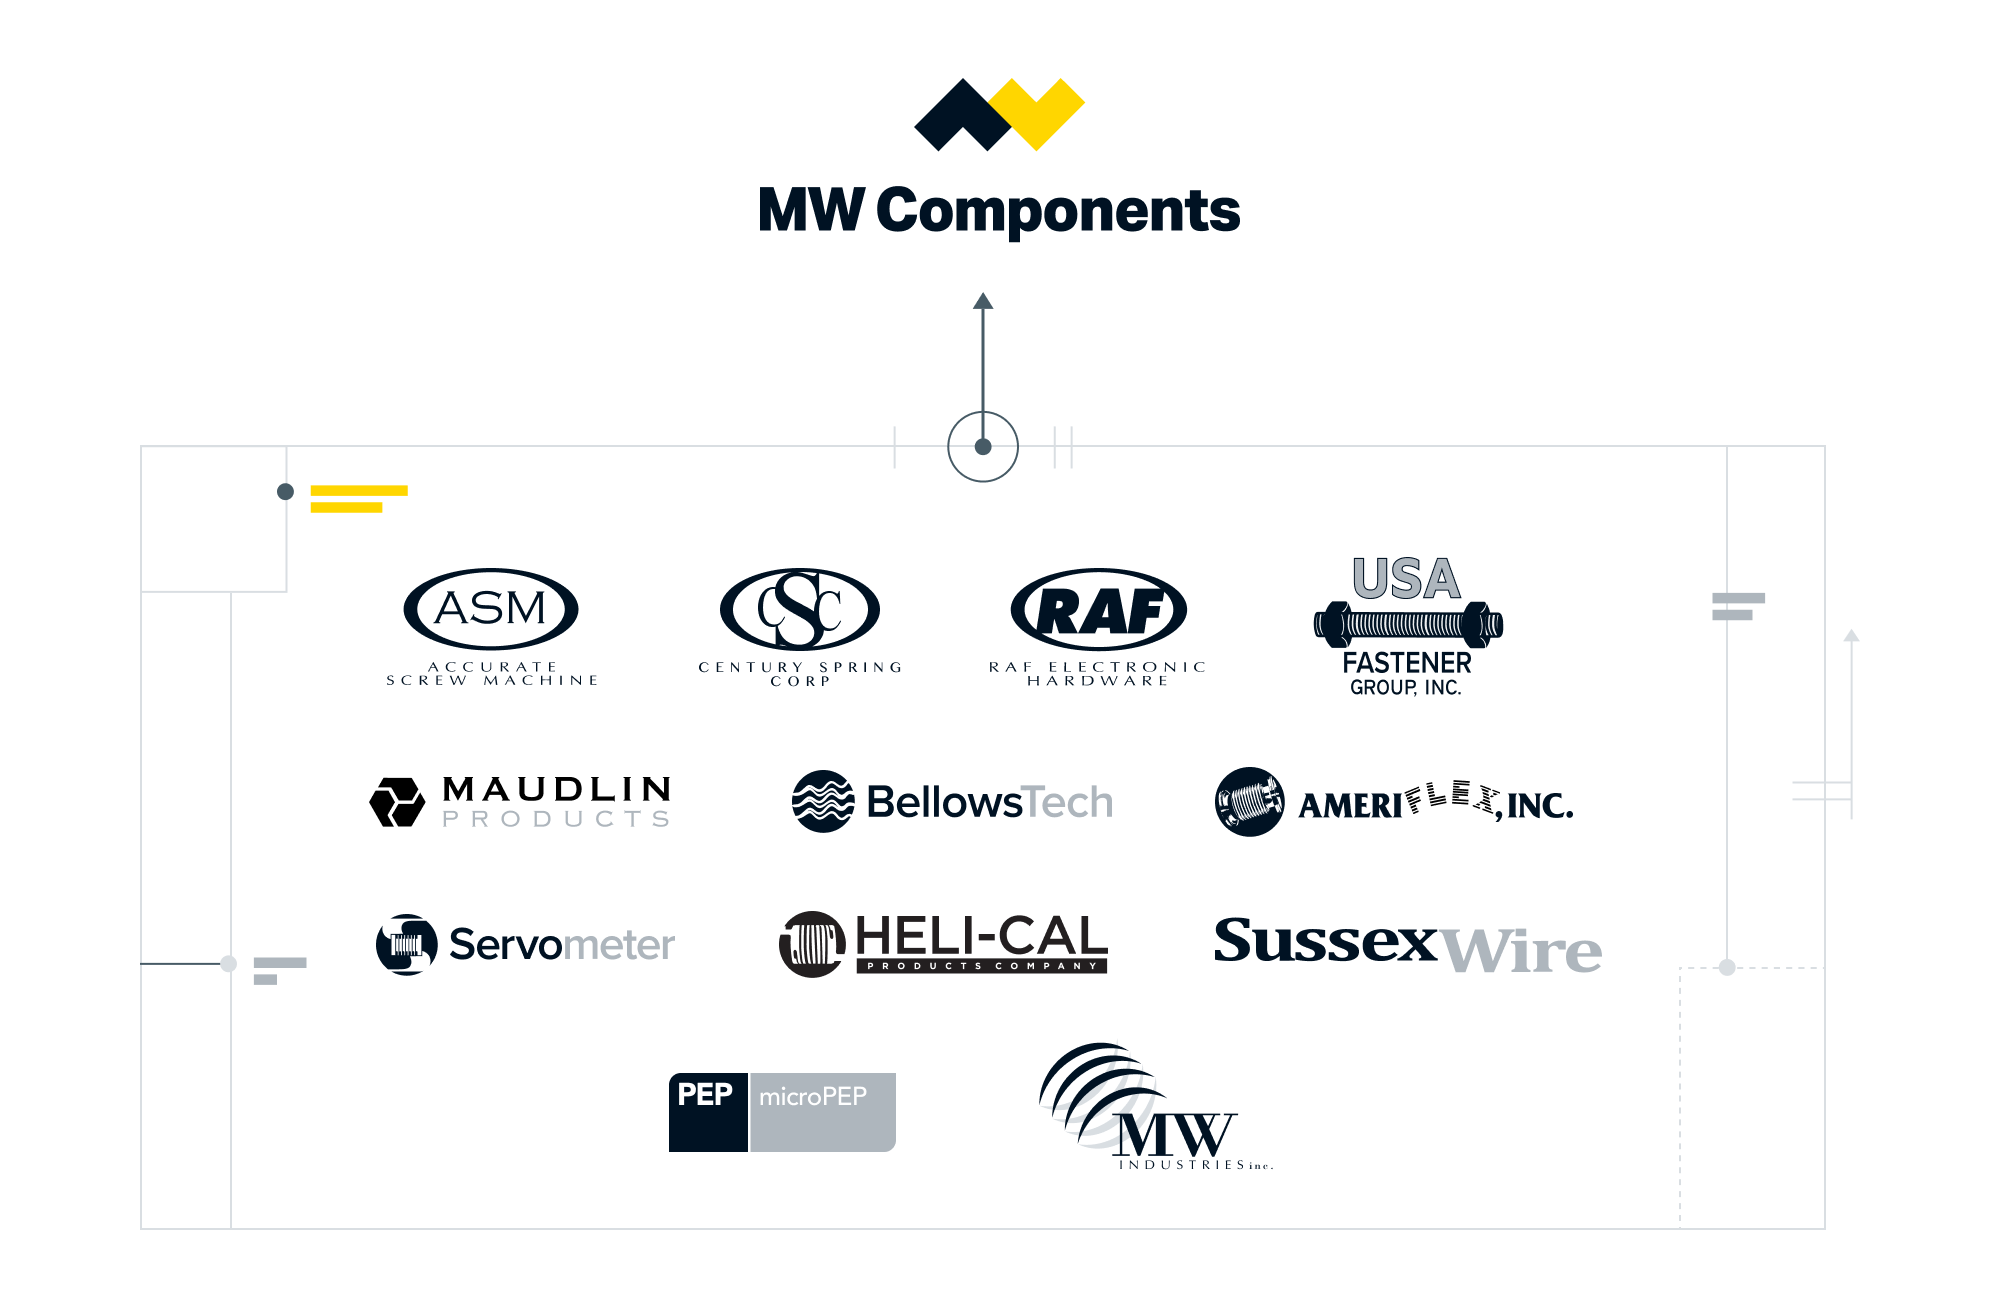 Graphic showing all the companies that are now consolidated under the MW Brand